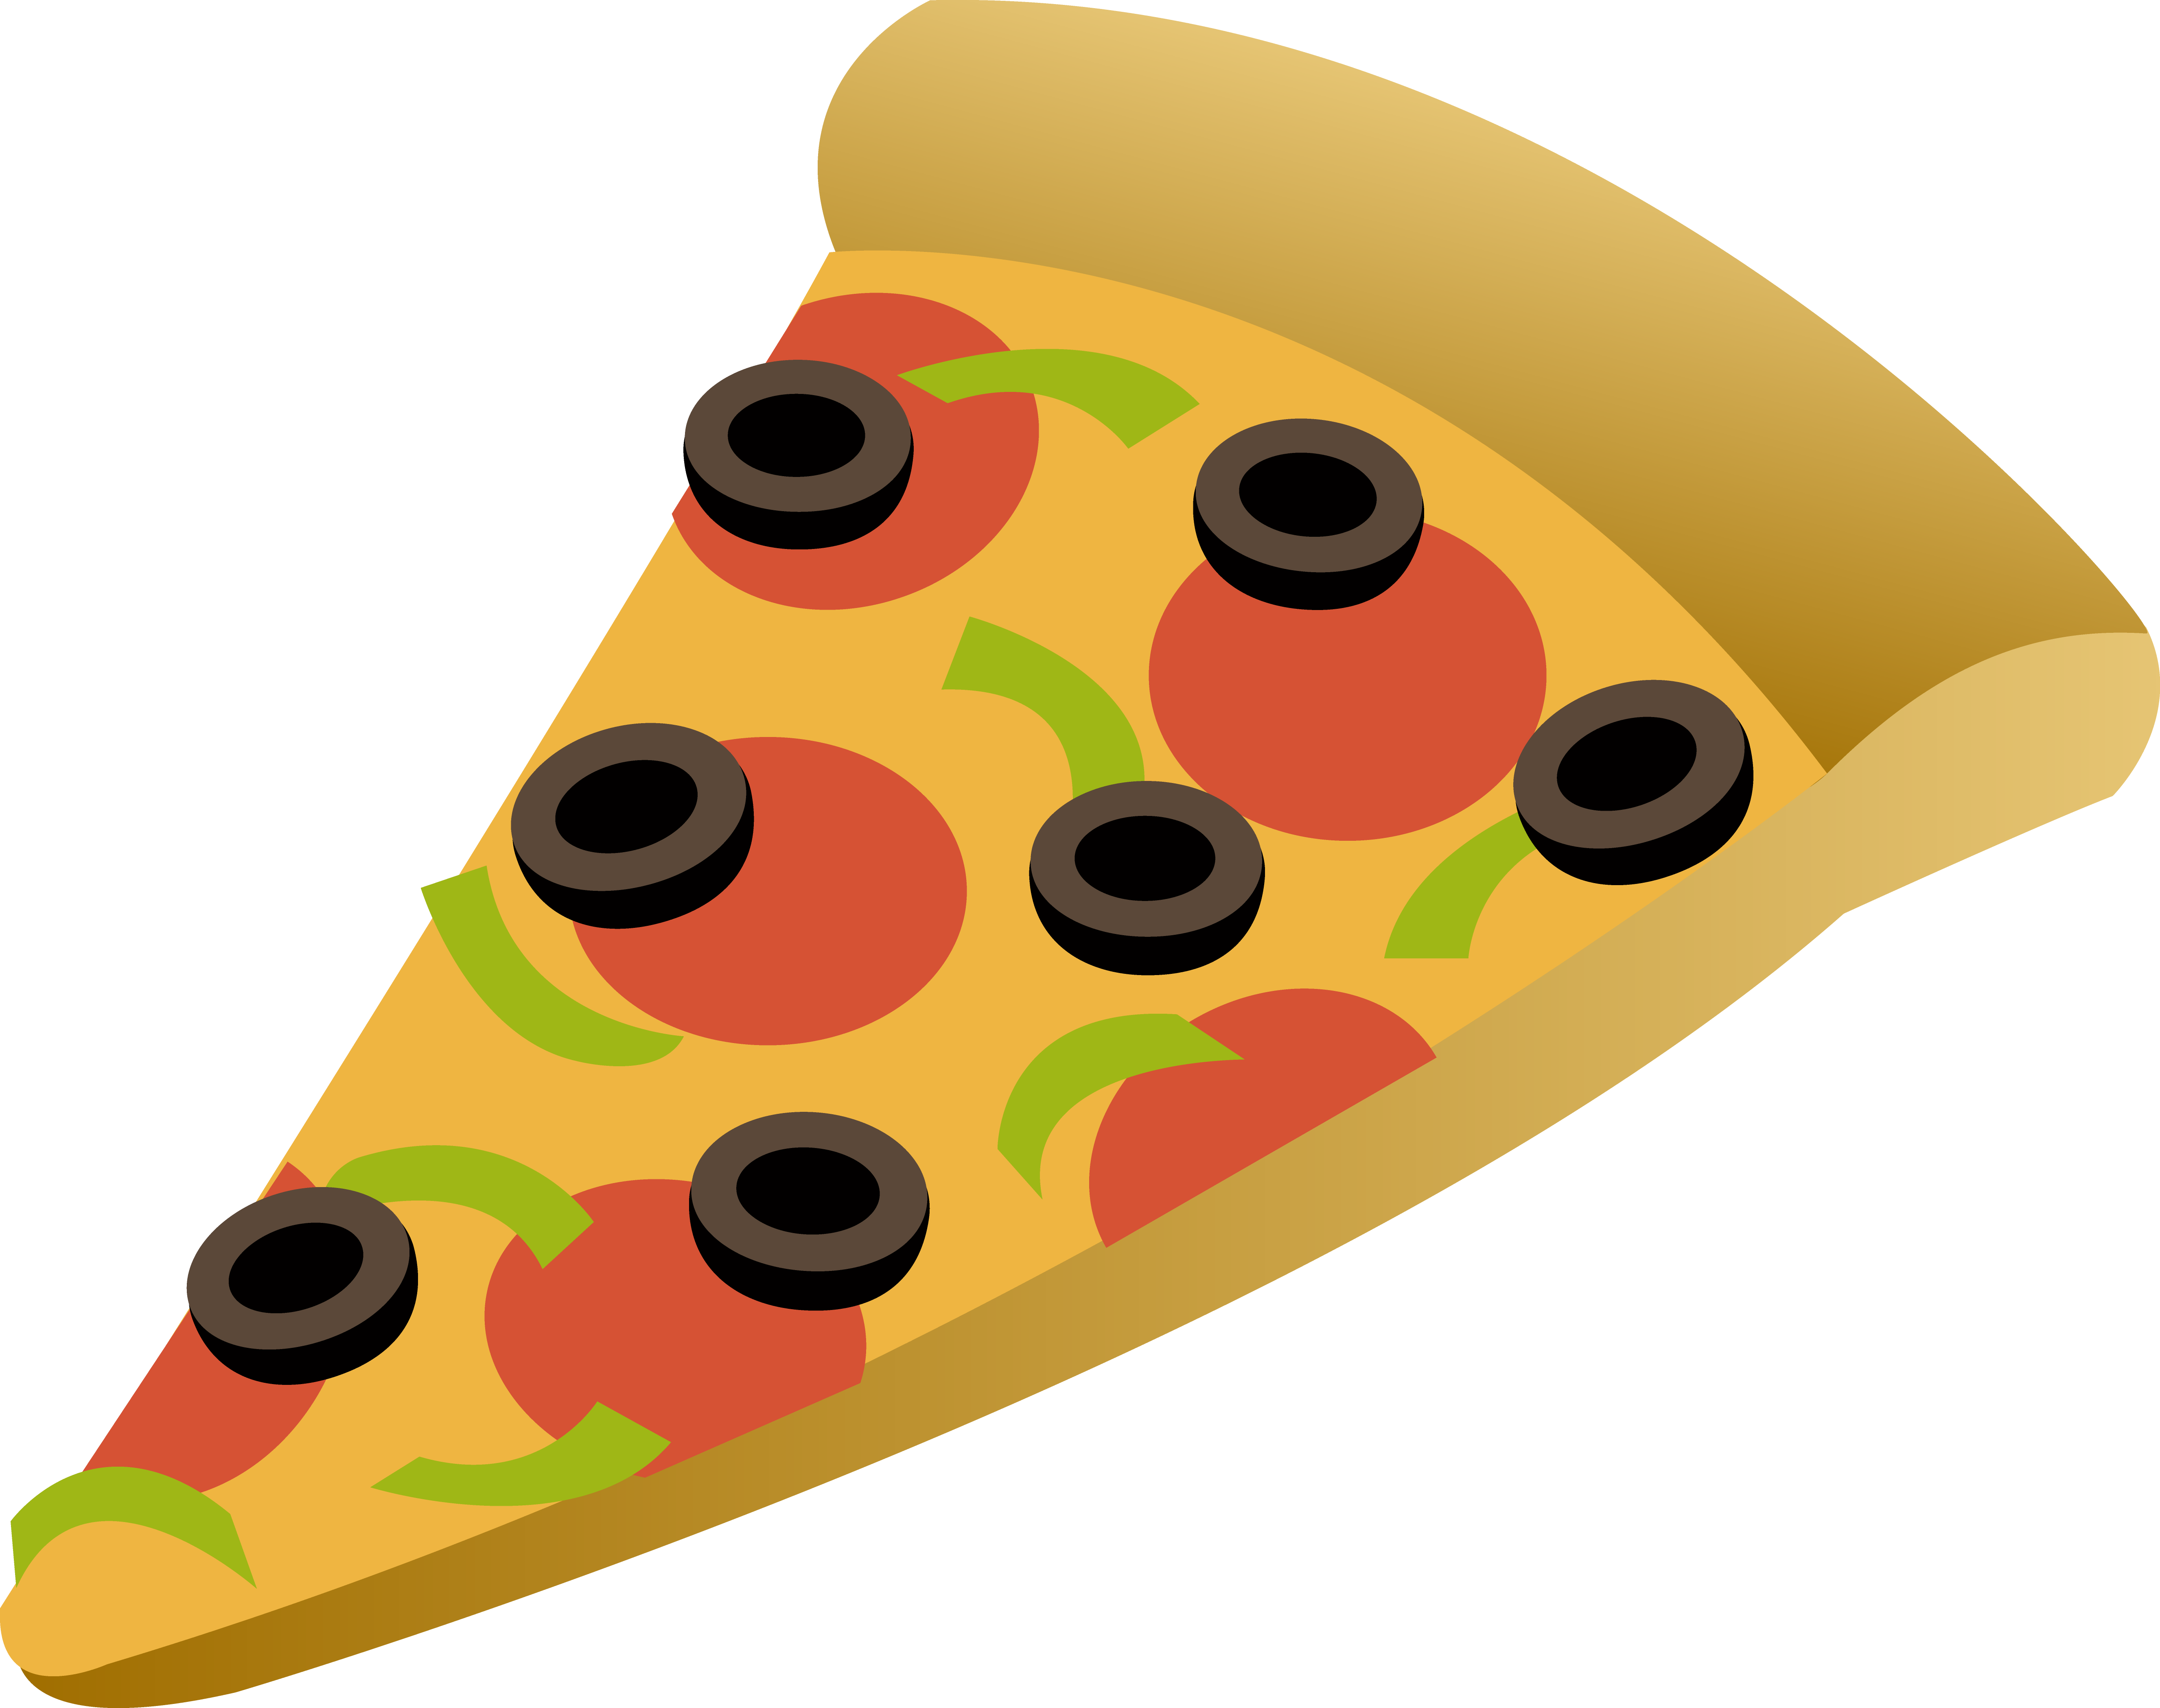 Free Png Pizza Slice - Food Pizza Slice Clipart, Transparent background PNG HD thumbnail